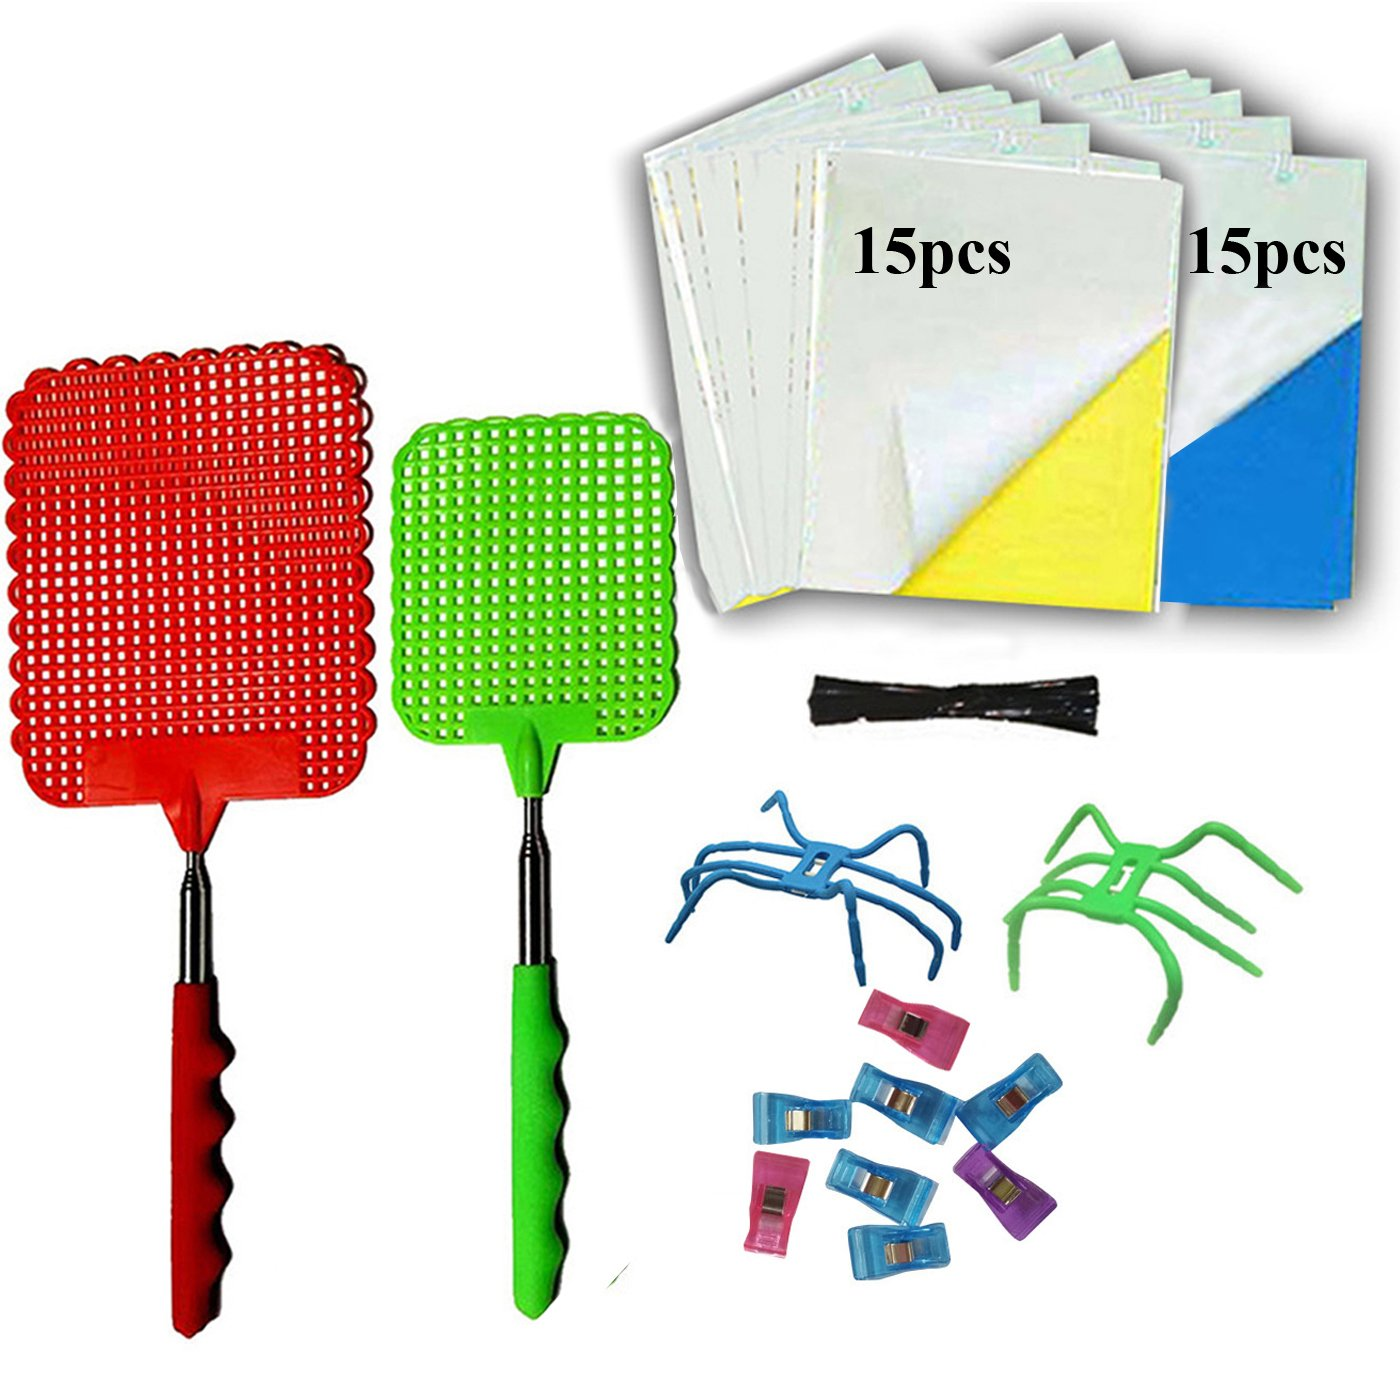 NewFerU Pest Control Kit Sticky Glue Strip Trap Catchers Plastic Manual Fly Swatter with Telescopic Handle for Indoor Outdoor Asian Beetle Light Bug Stinkbug, Ladybug, Mosquito